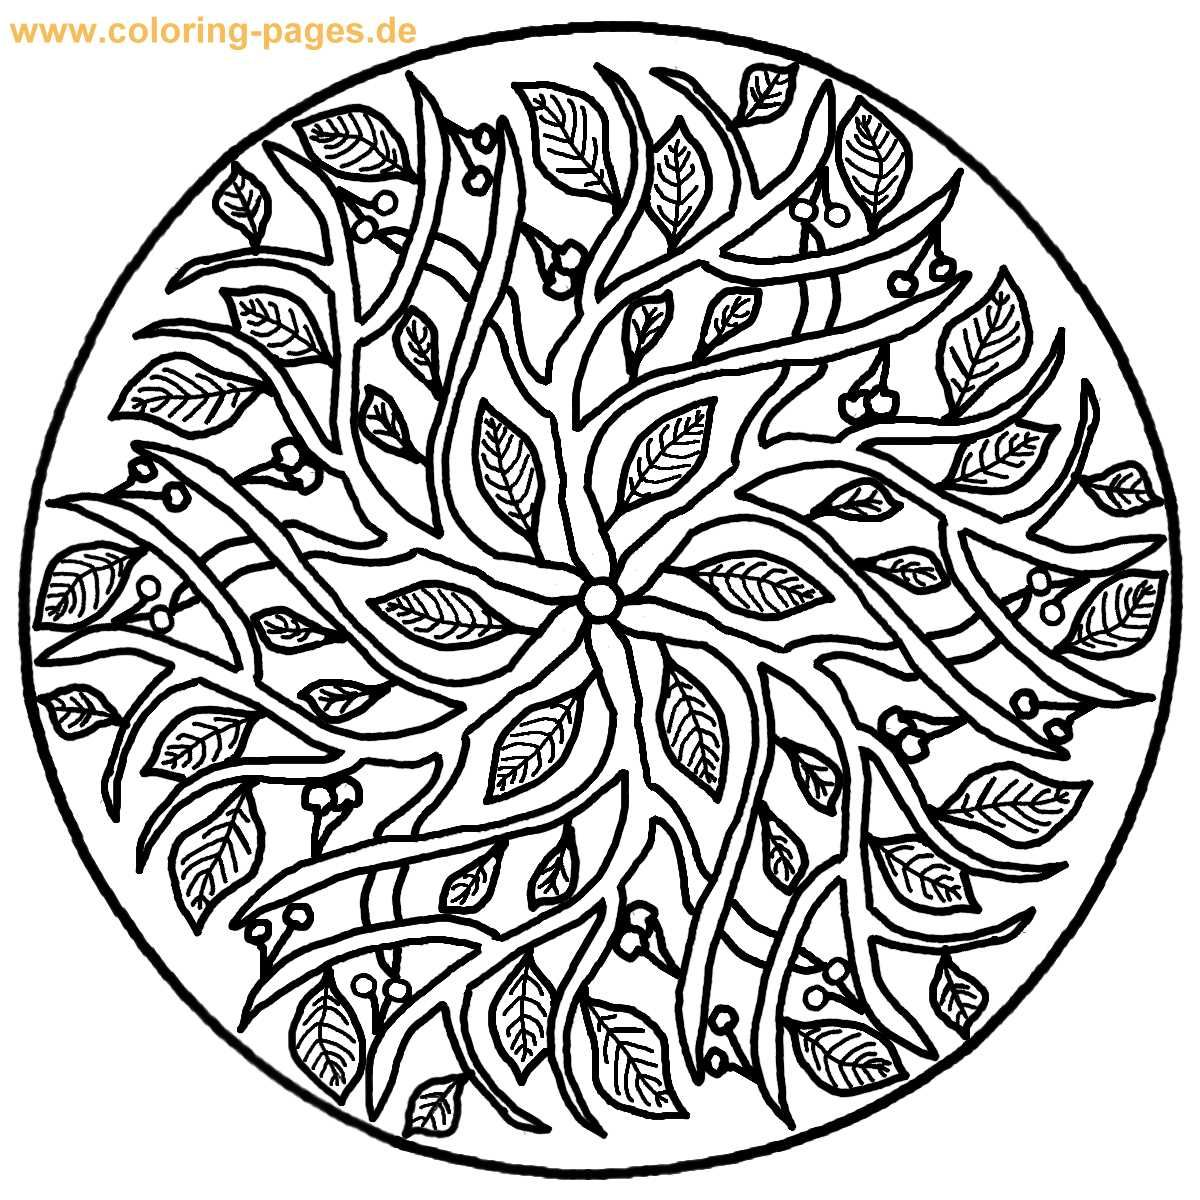 Uncategorized Mandala Coloring Pages Printable center yourself with mandalas coloring pages mandala pages